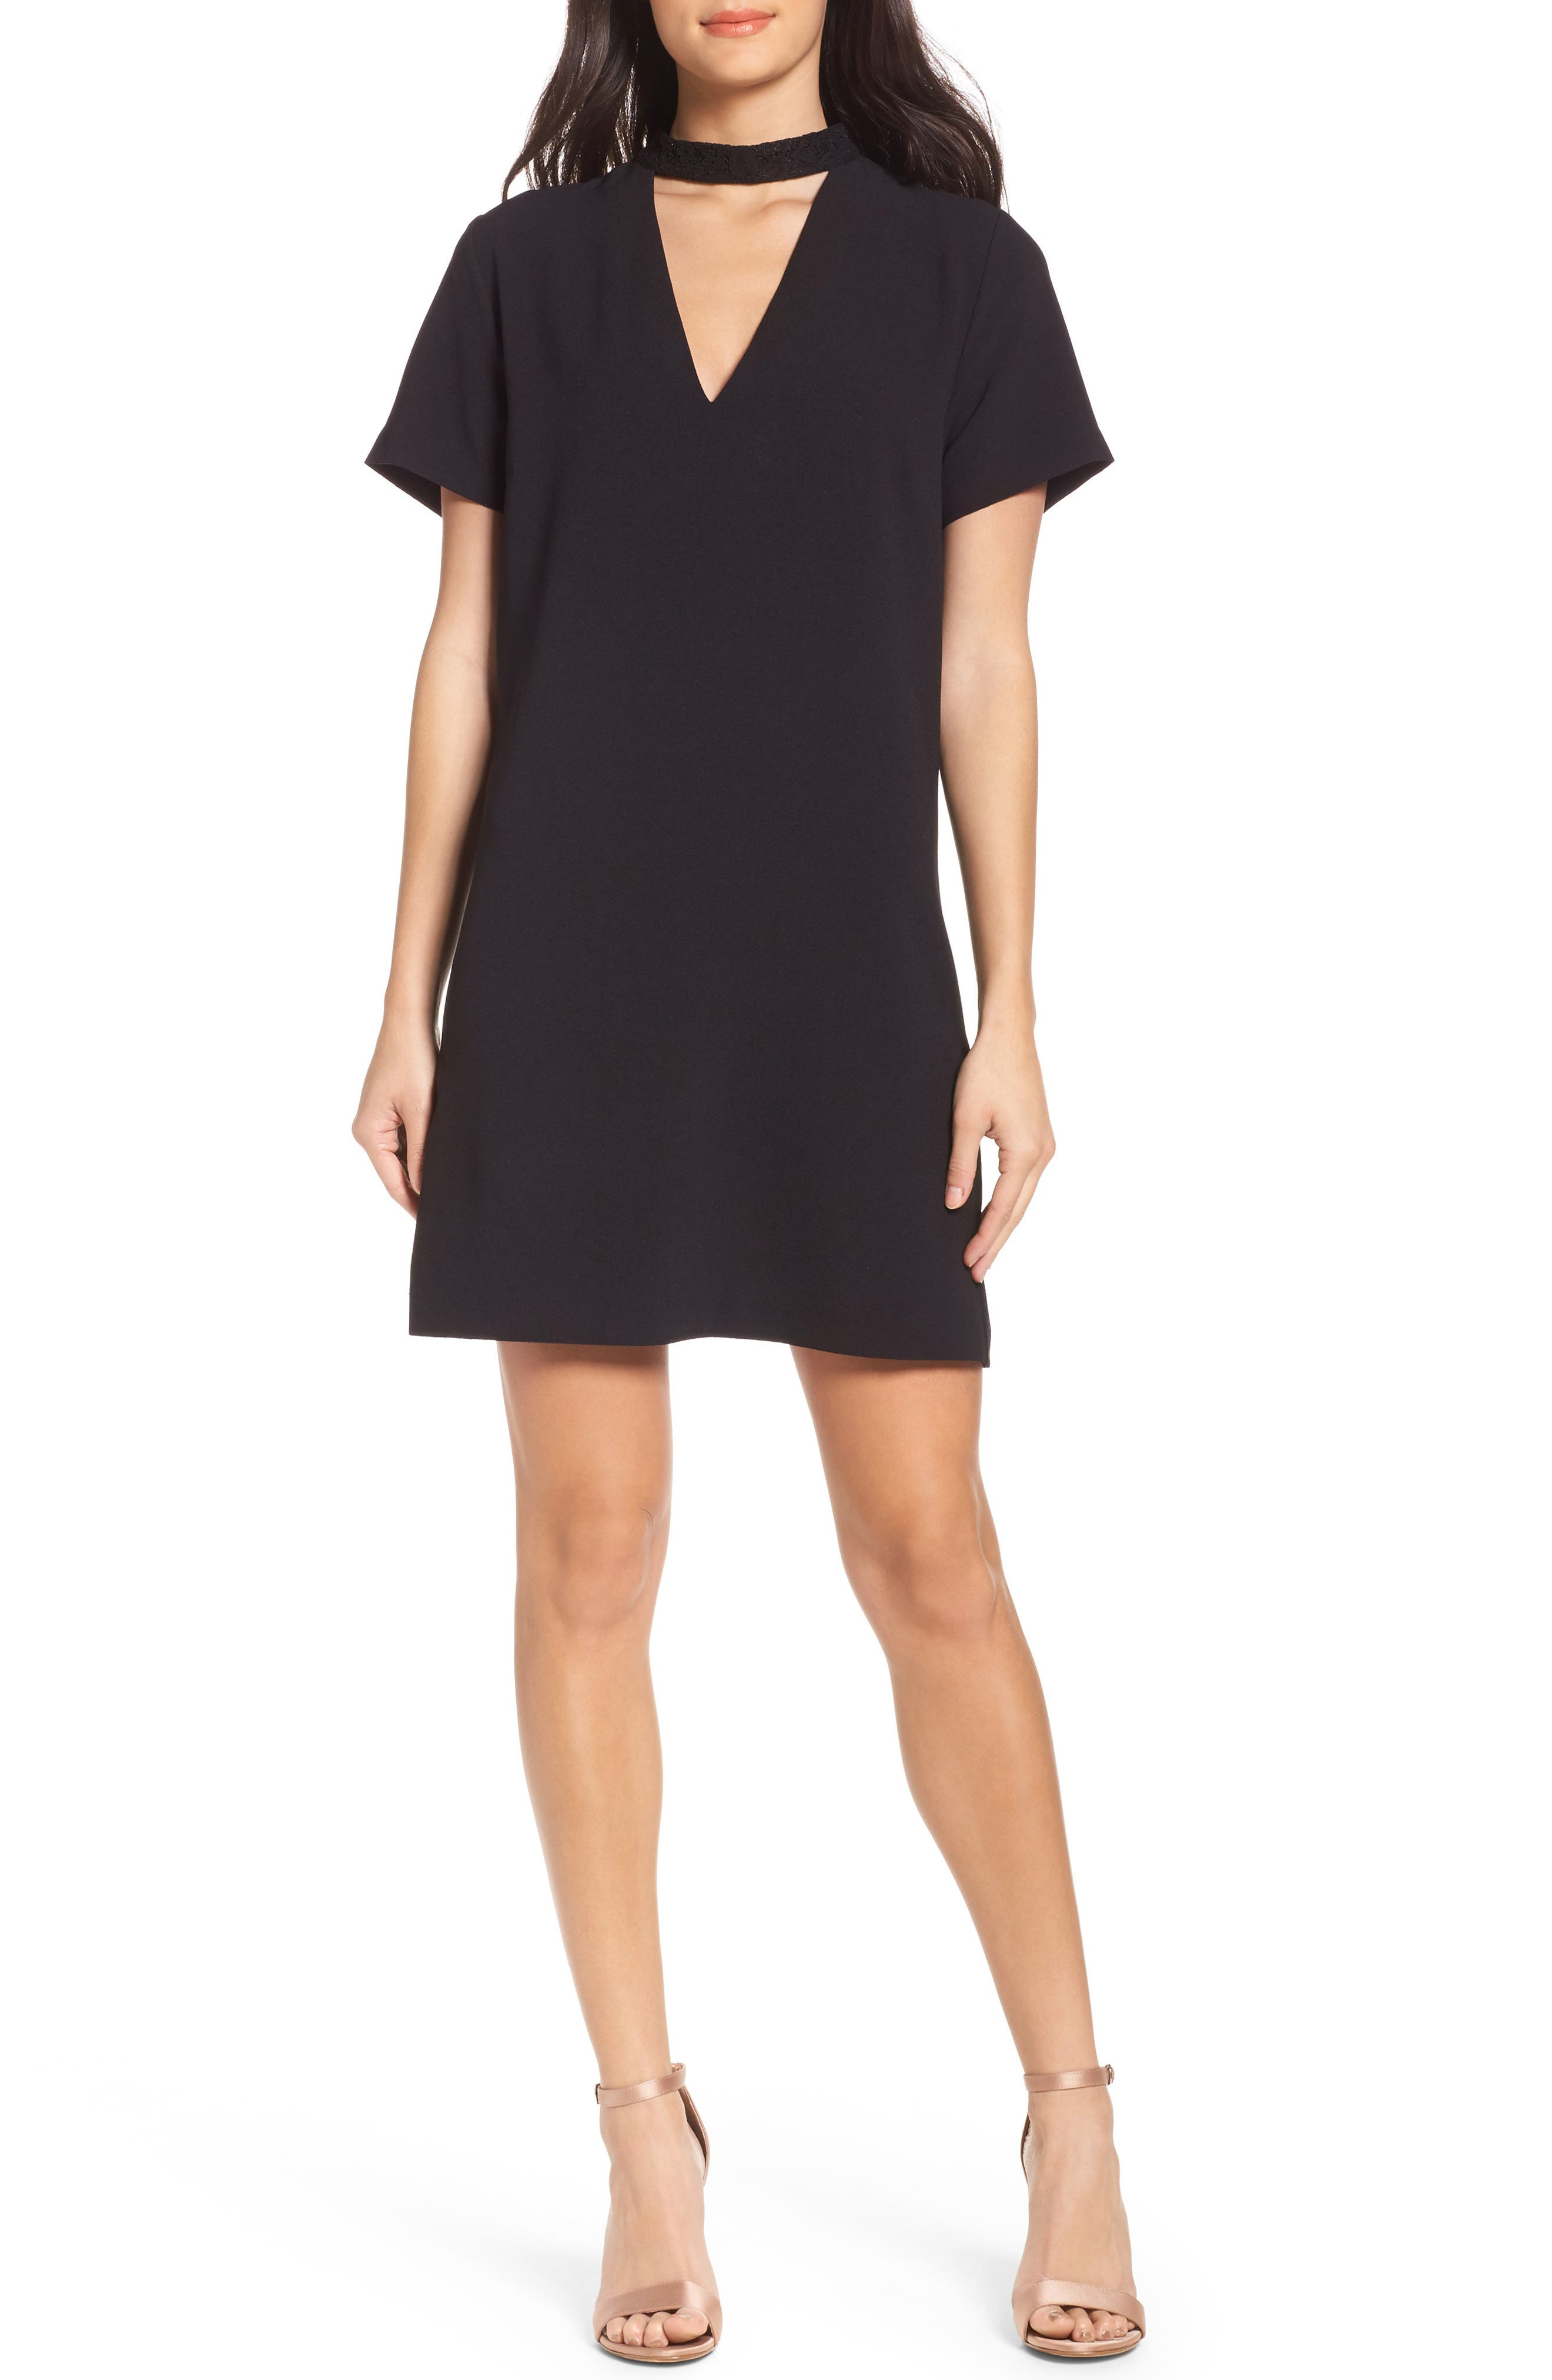 Alternate Image 1 Selected - Felicity & Coco Kimberly Choker Shift Dress (Nordstrom Exclusive)